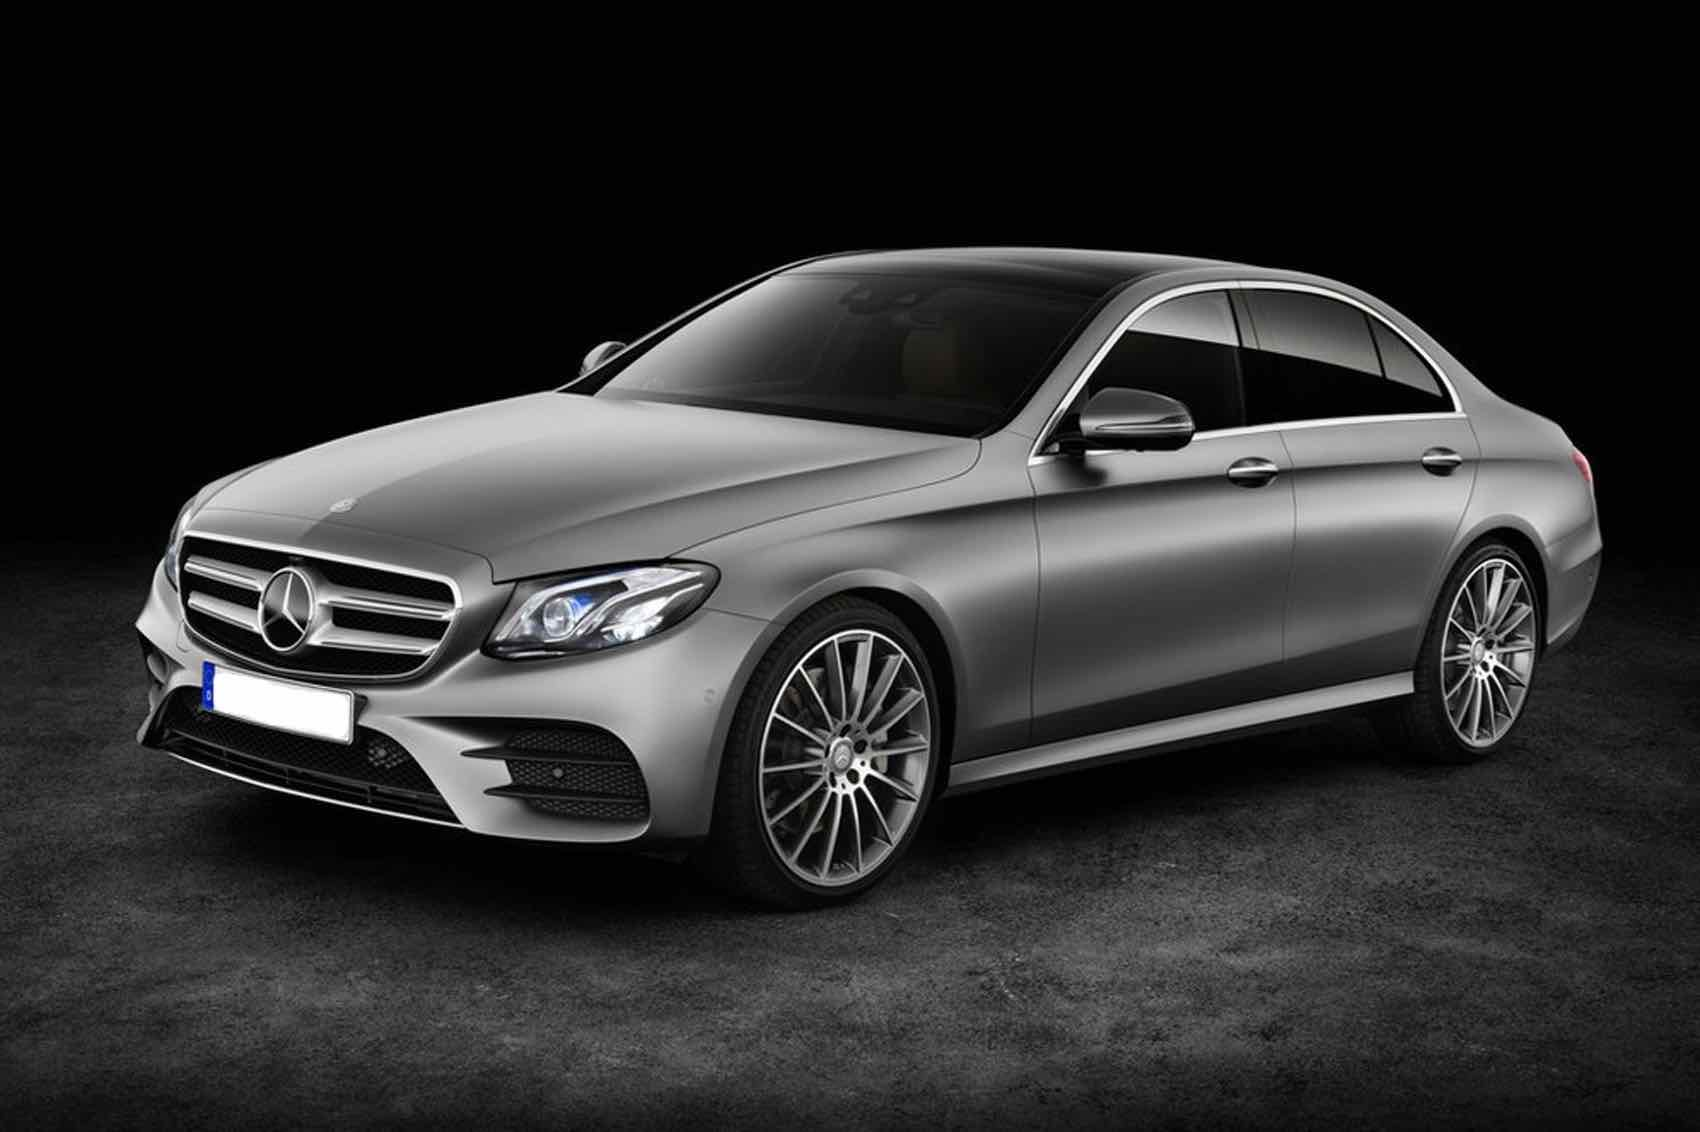 Luxury-in-motion-chauffeur-service-surrey-our-vehicles-mercedes-benz-e-class.jpg